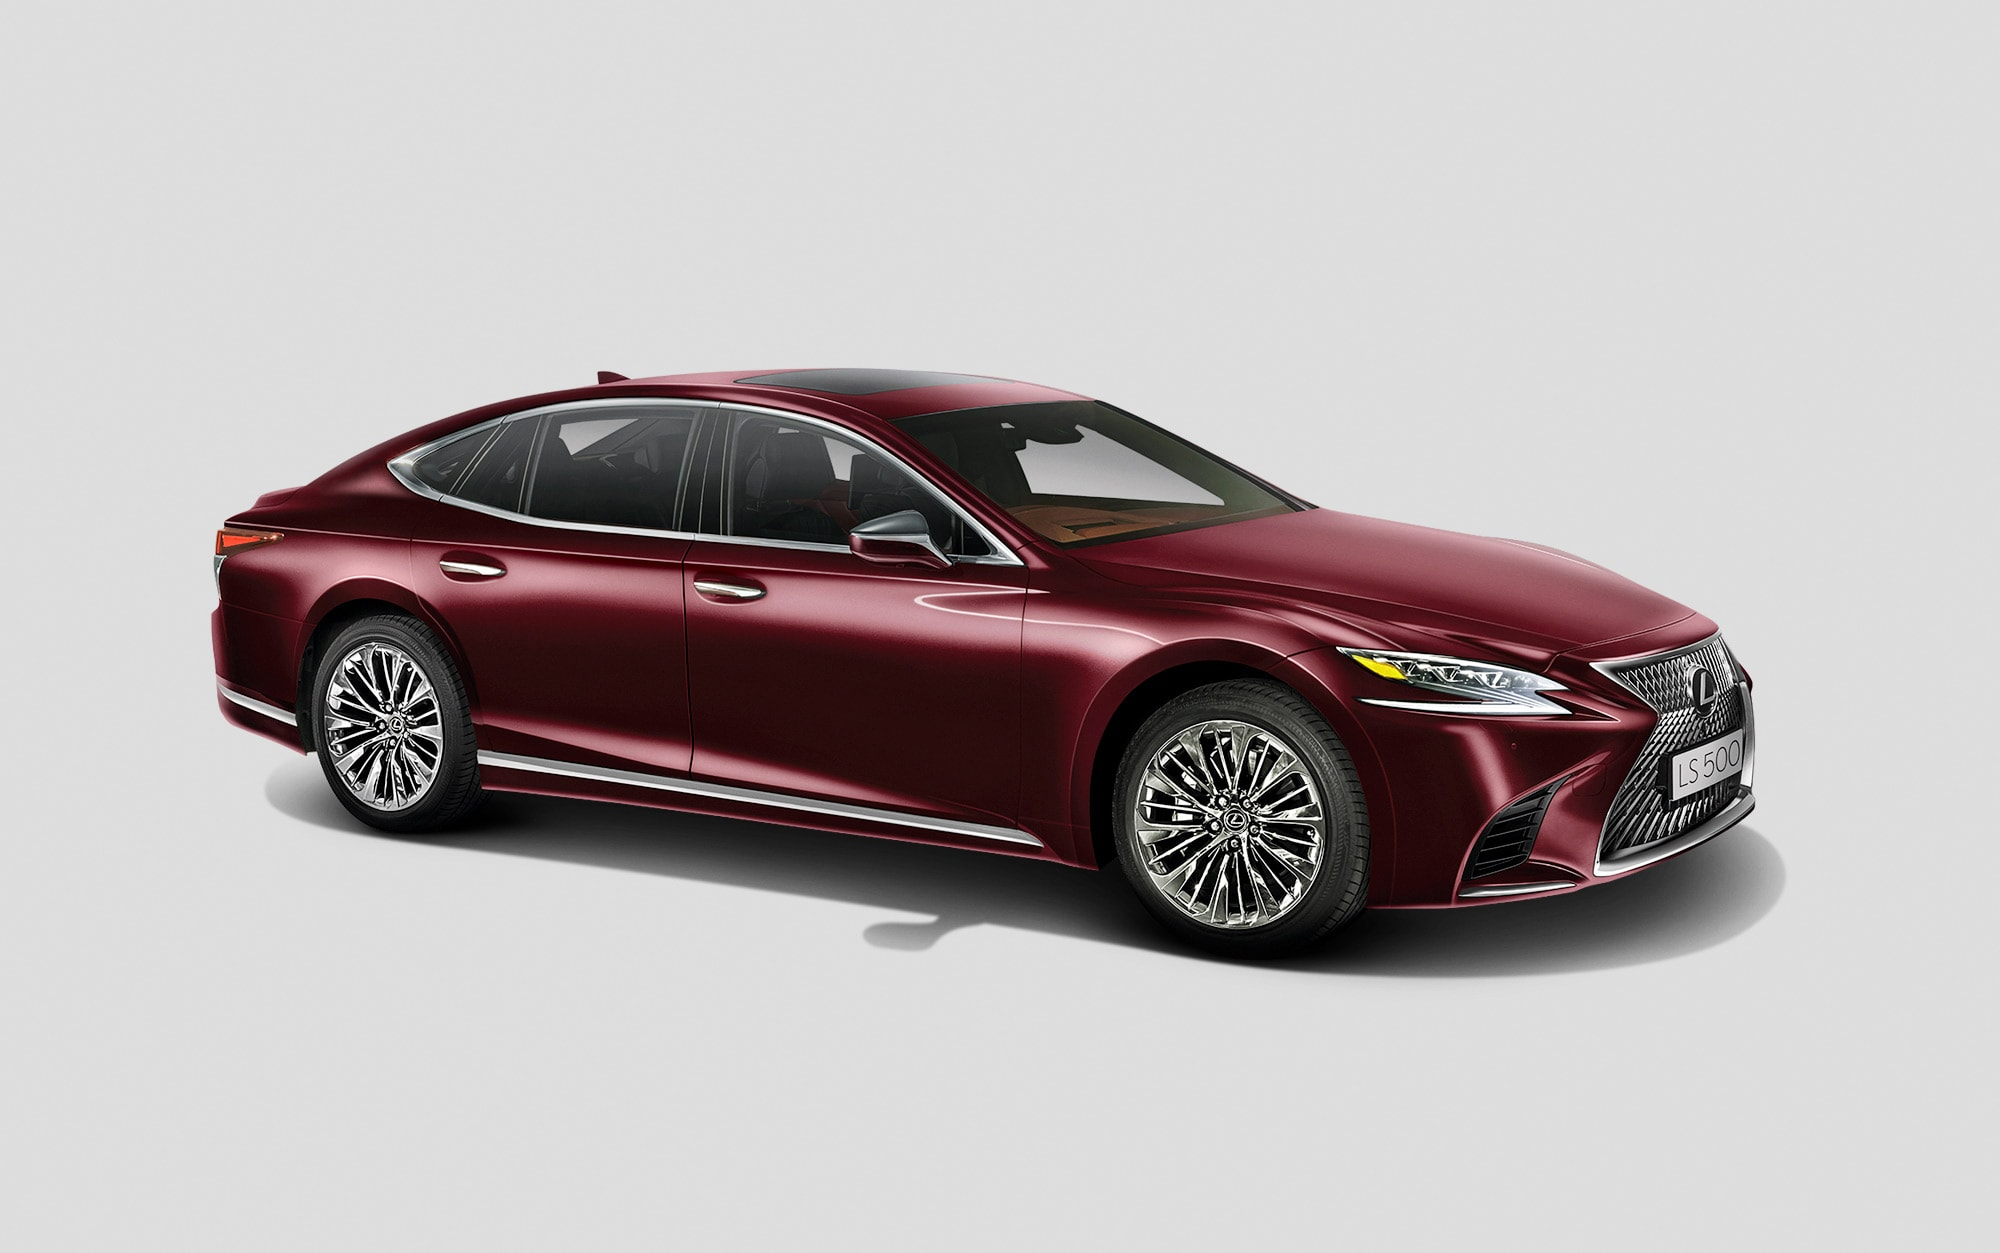 the all-new Lexus ls 500 luxury car photographed in studio using arri lighting with manual exposure for lexus south africa